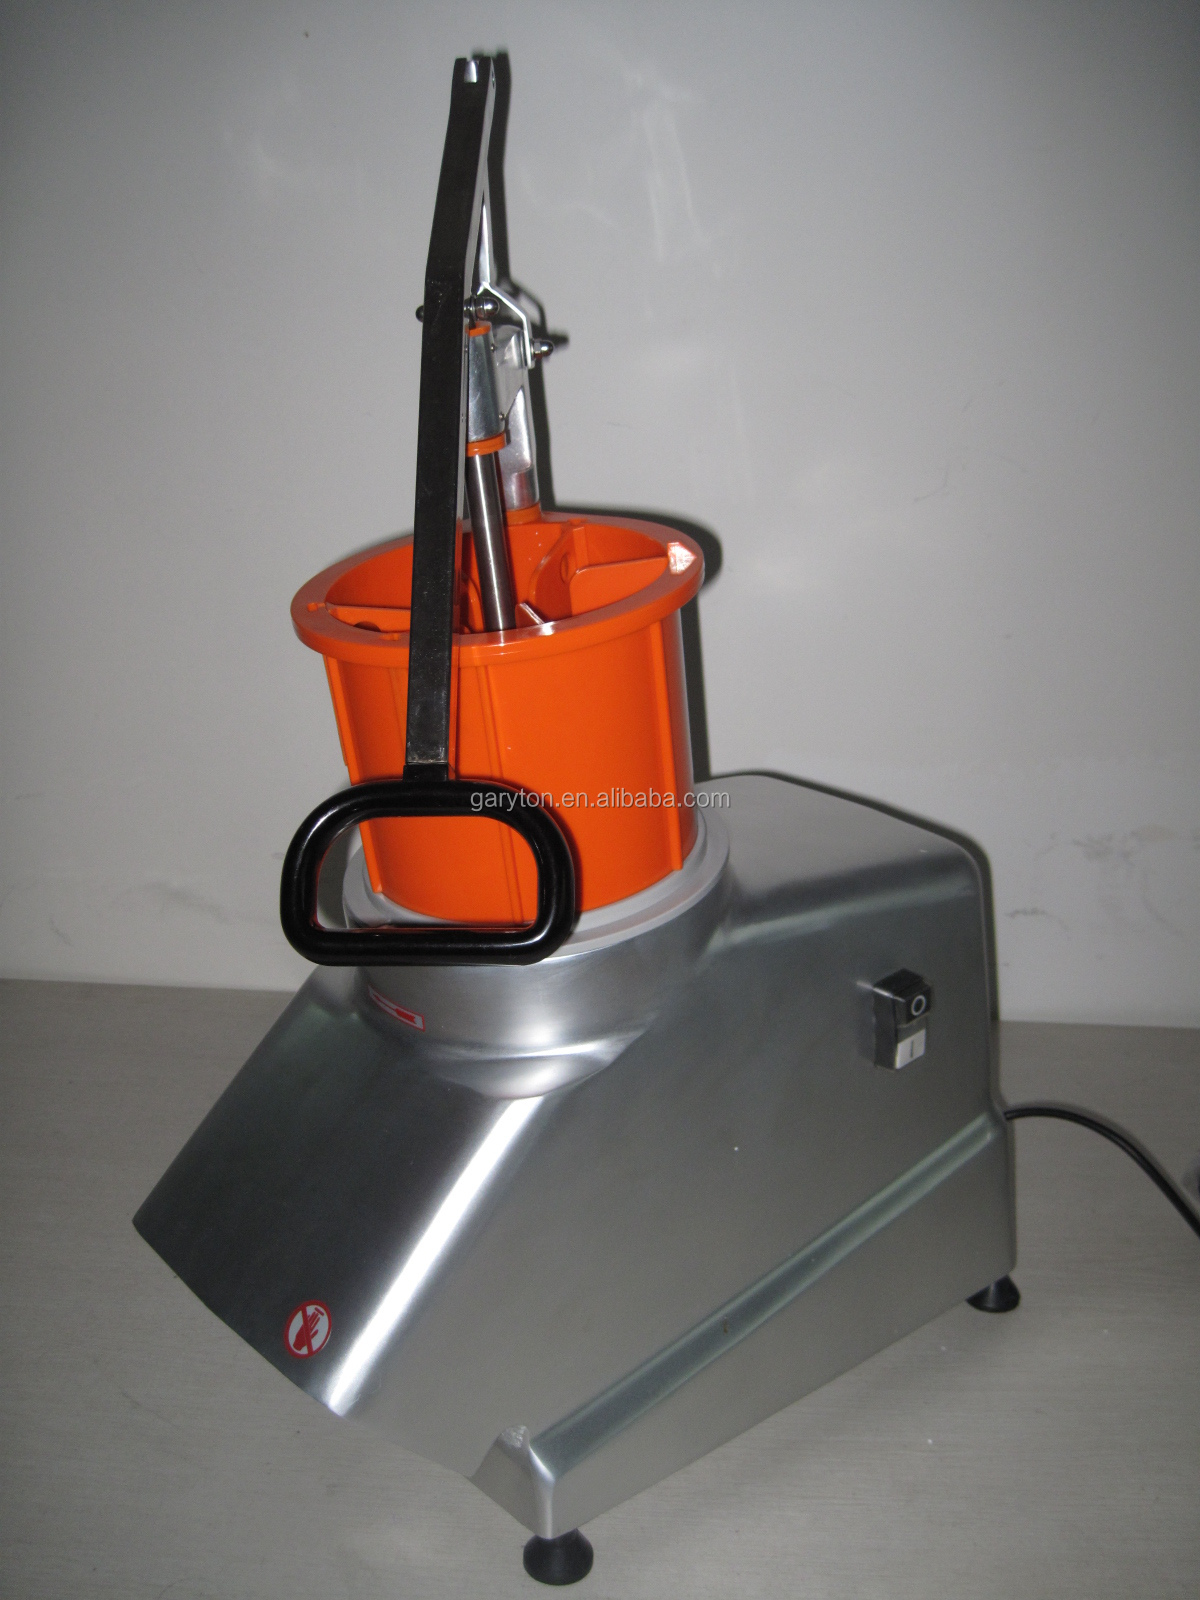 GRT-VC500 CE Certificate Industrial Vegetable Cutter For Sale